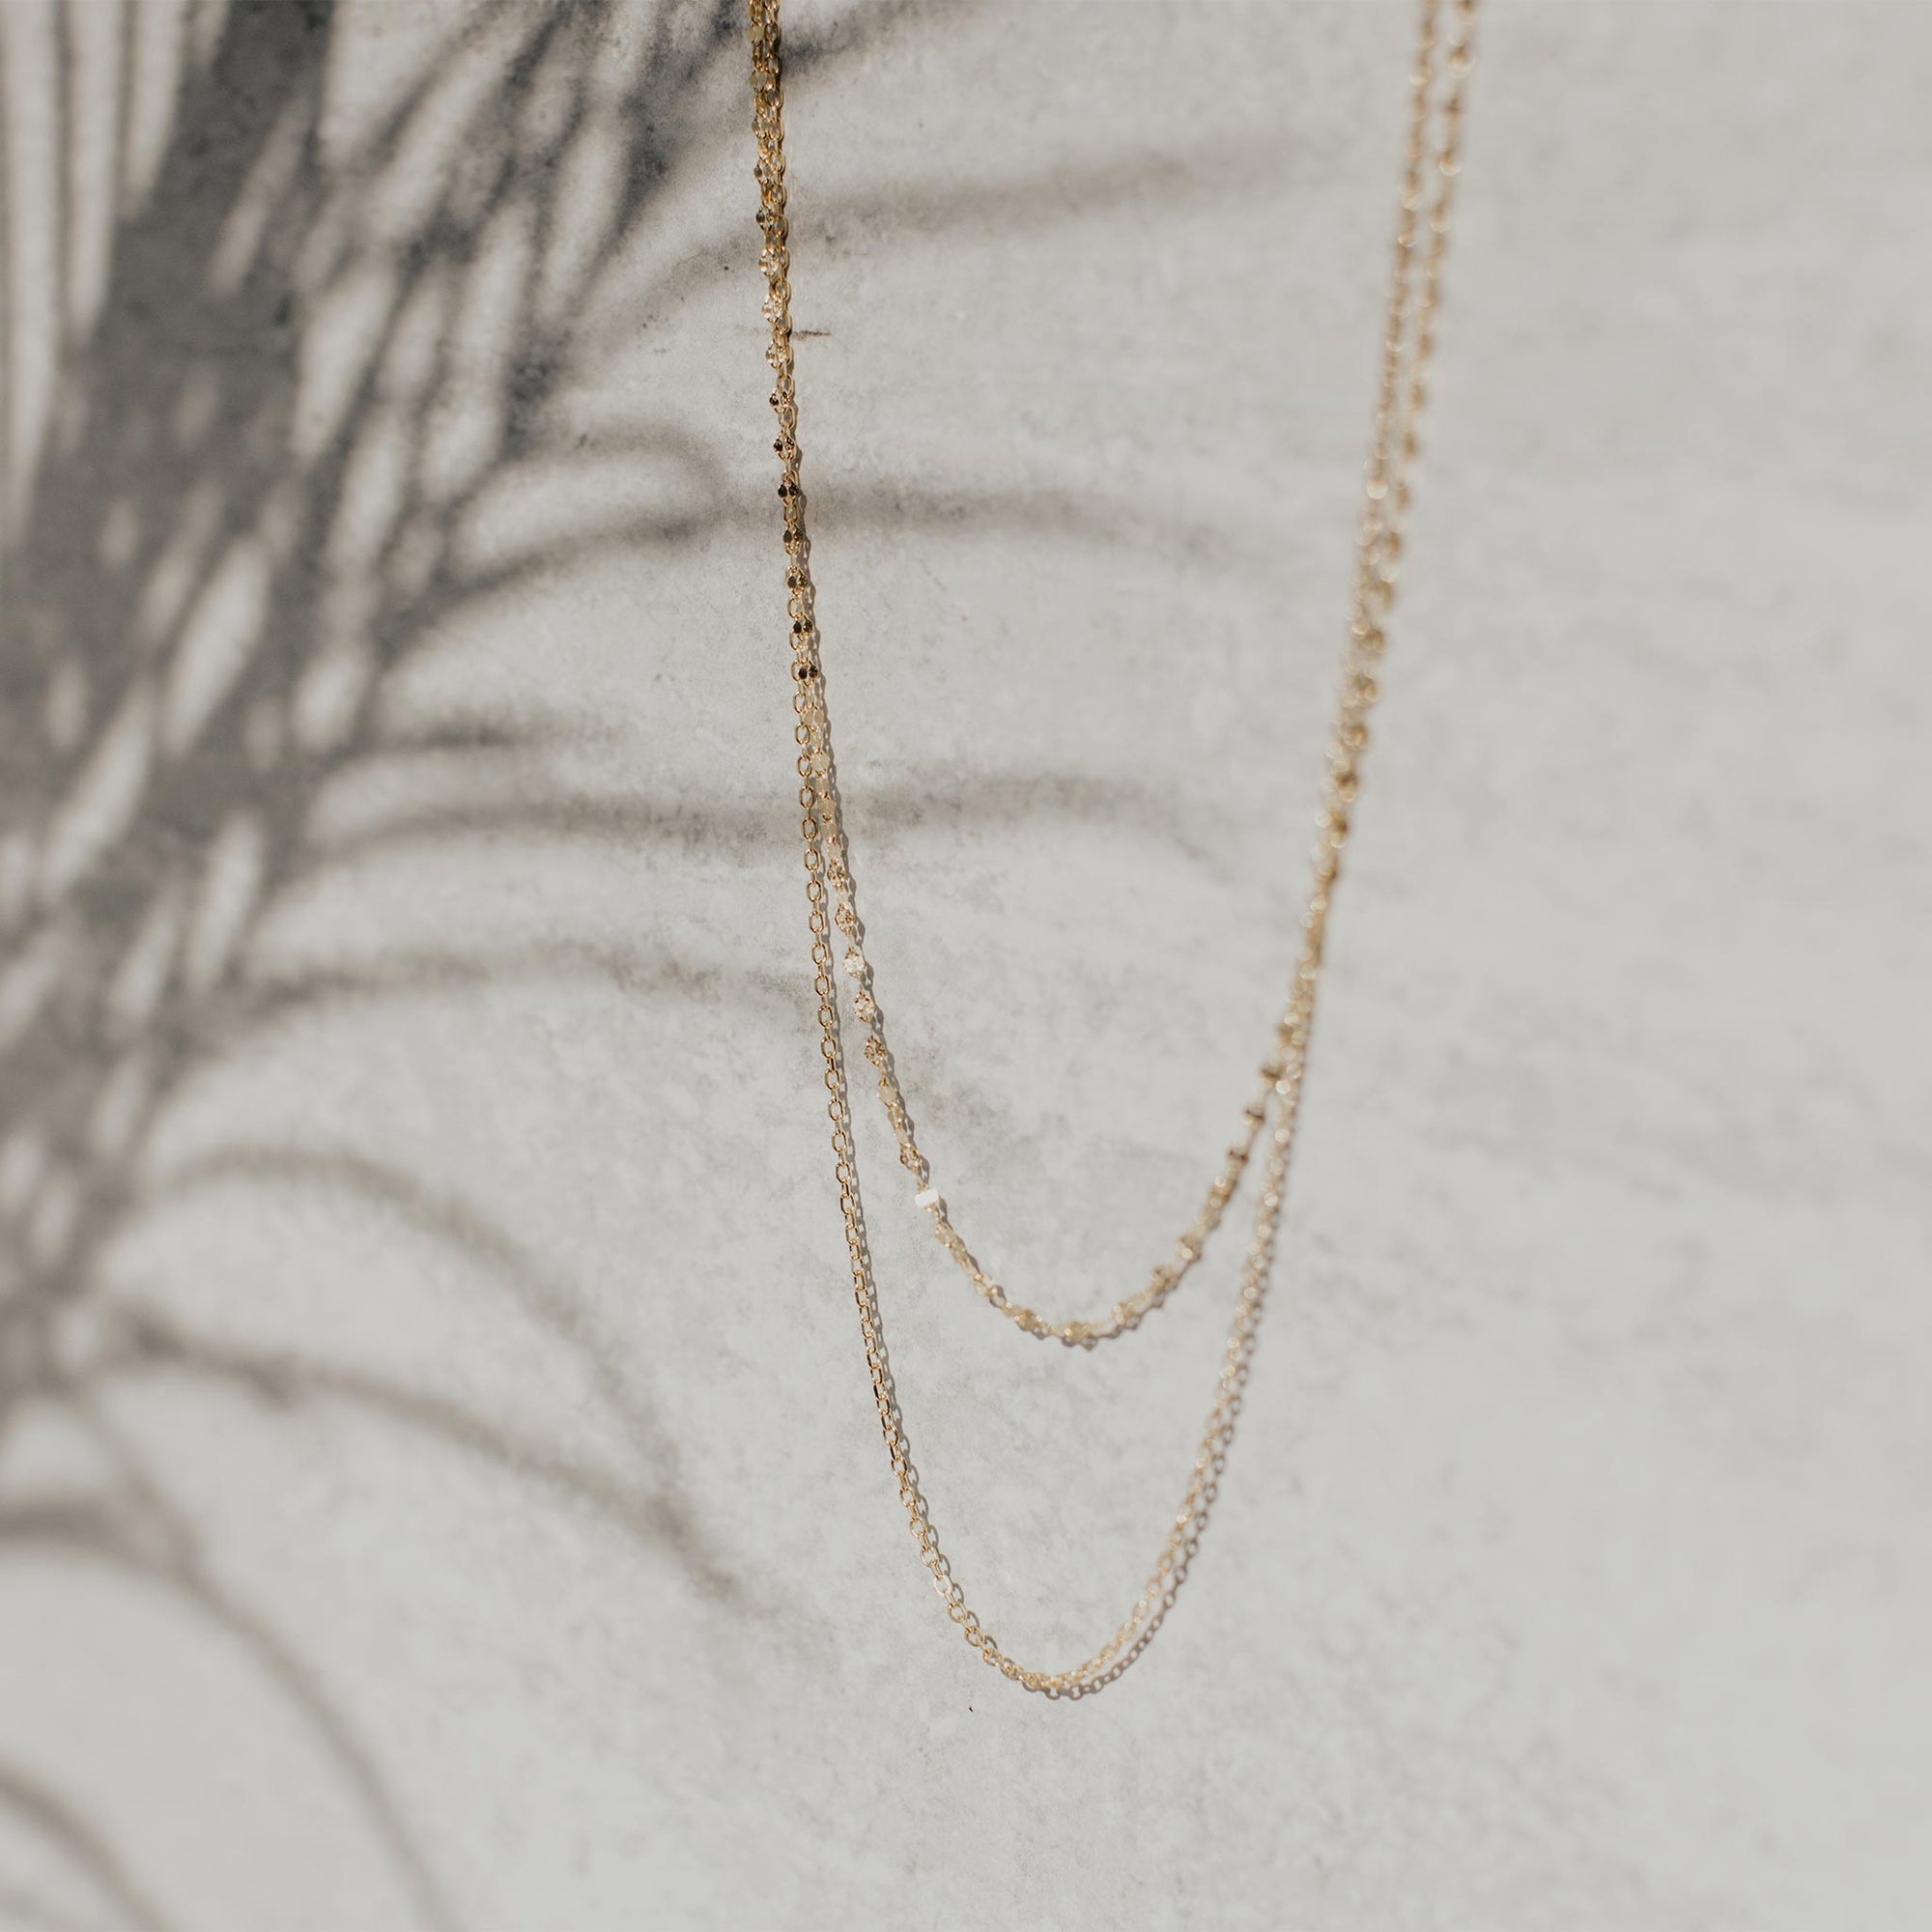 Seaside Dainty Chain Necklace - Evertess Jewelry